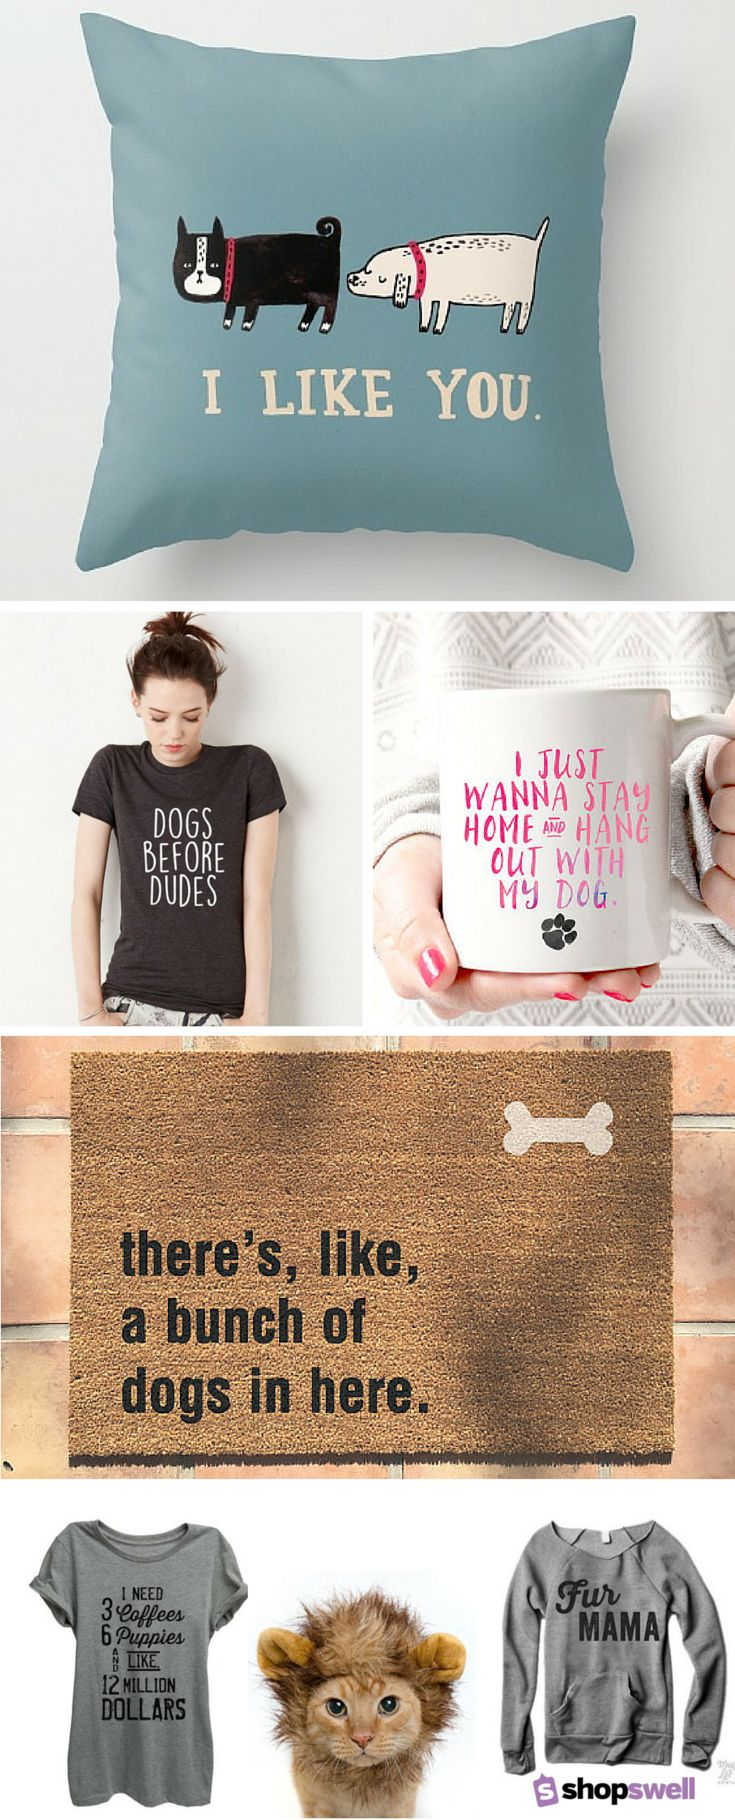 If you're a fur mama you'll totally get why these pet products are so awesome.